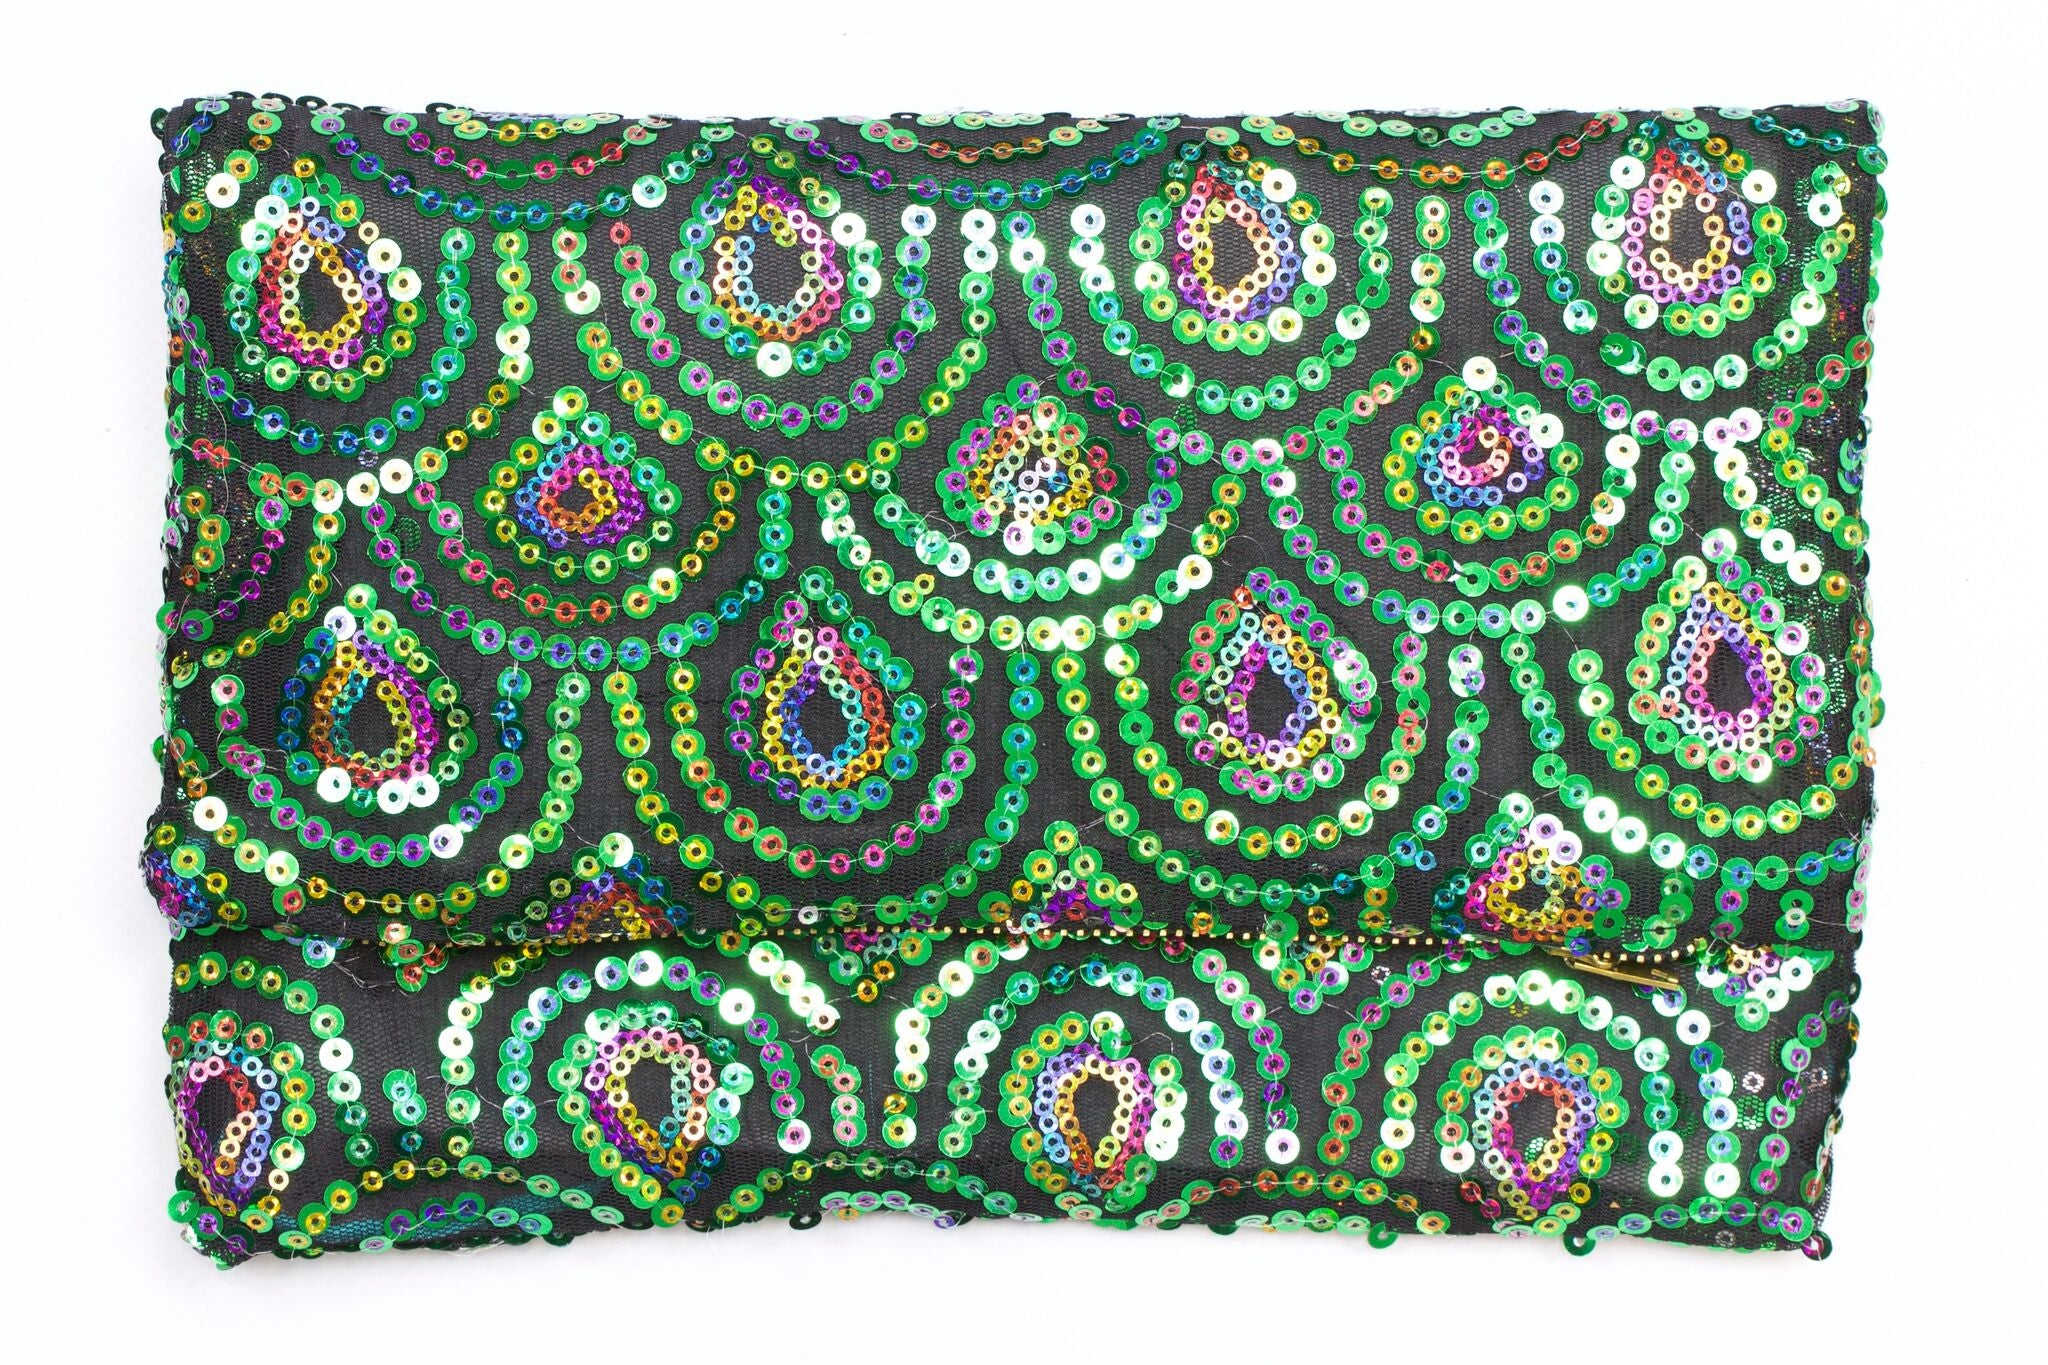 Green Peacock Foldover Clutch